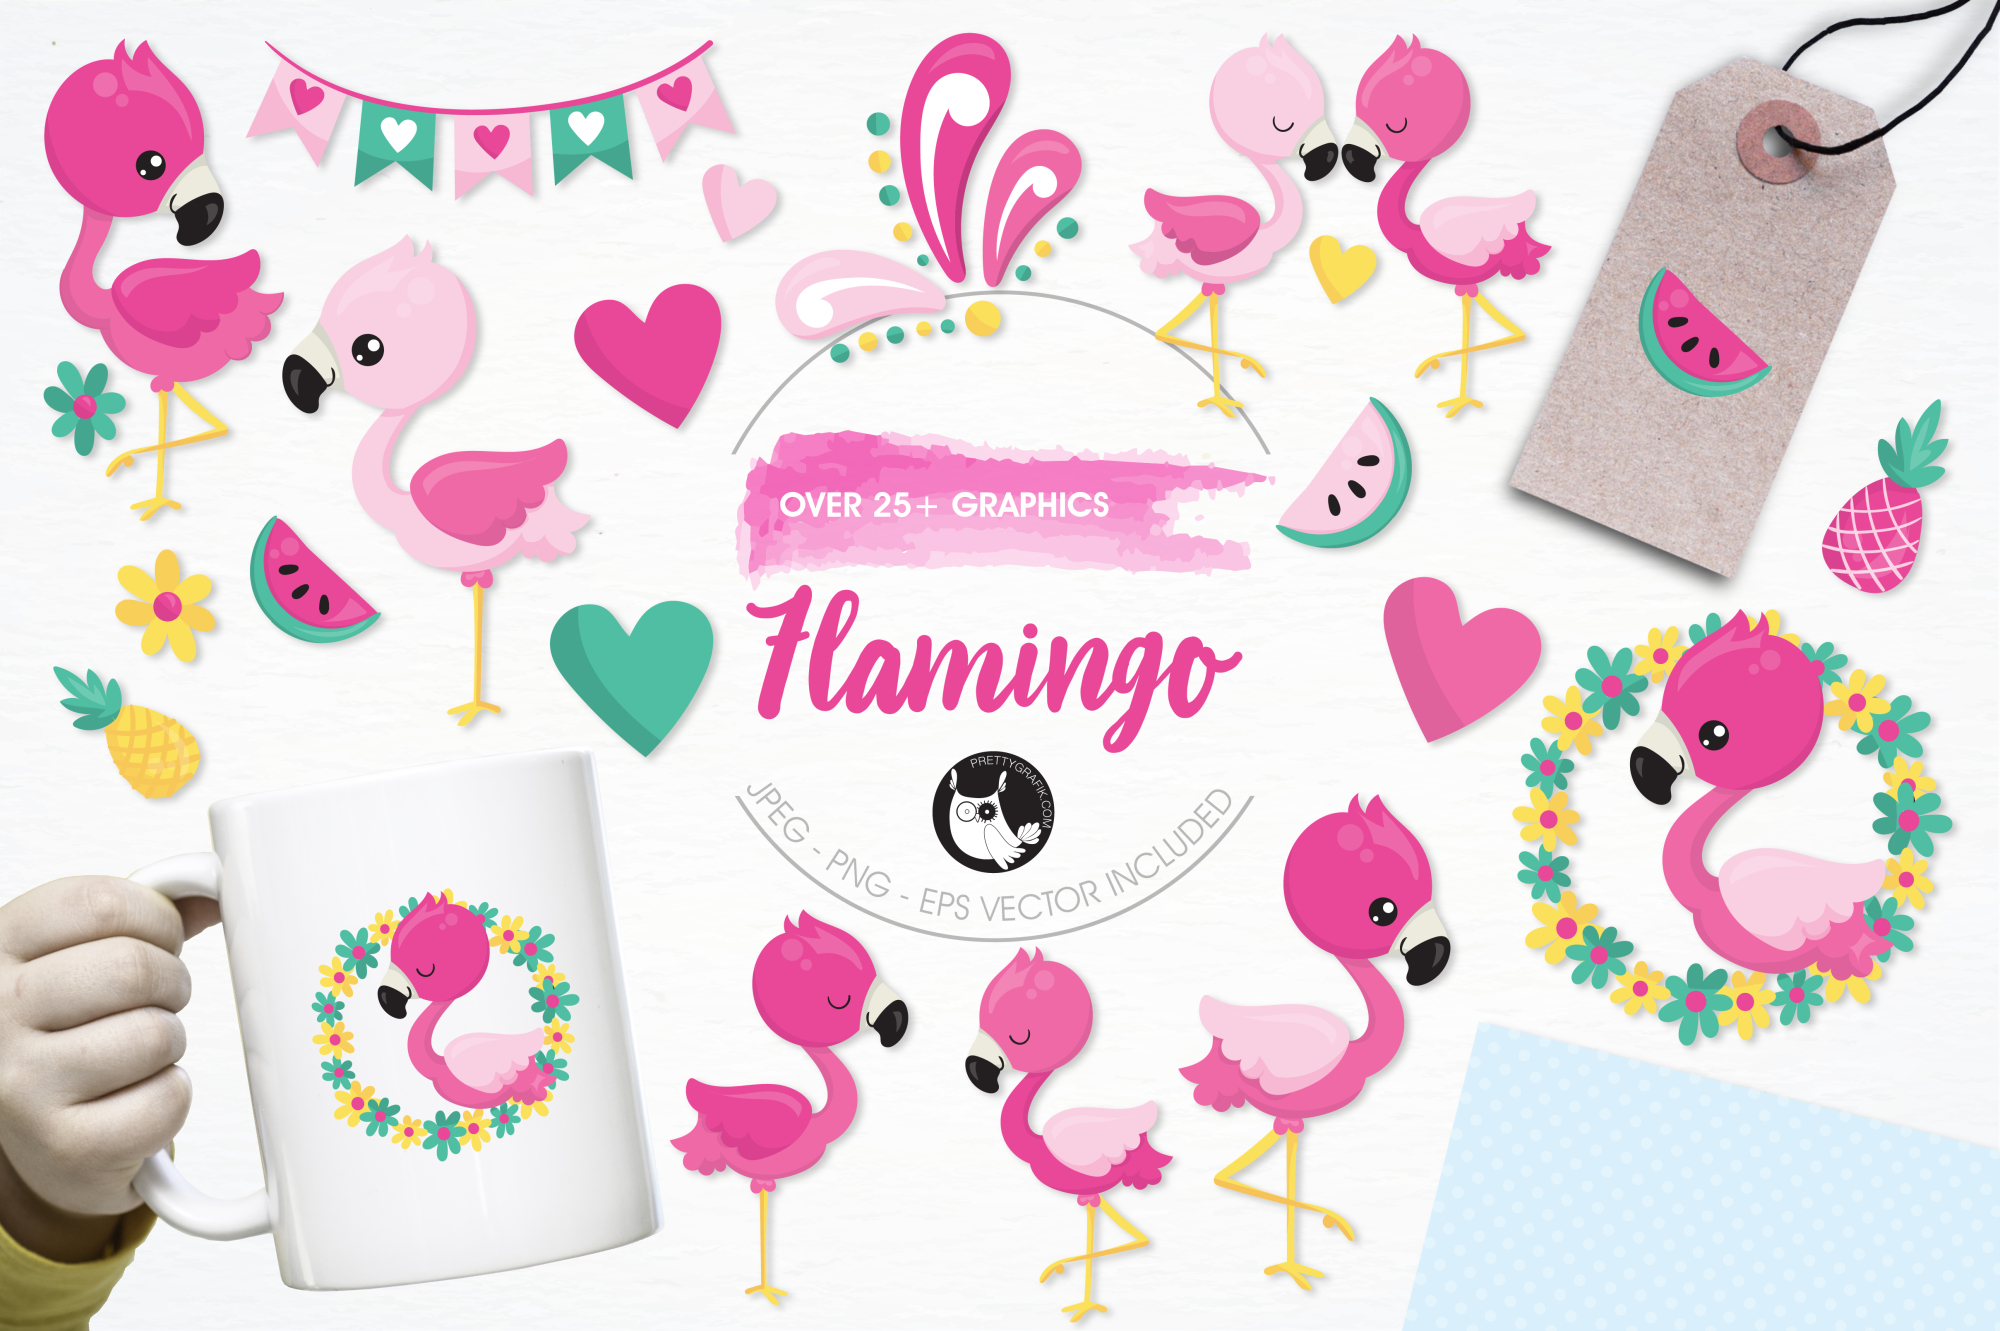 Flamingo graphics and illustrations example image 1